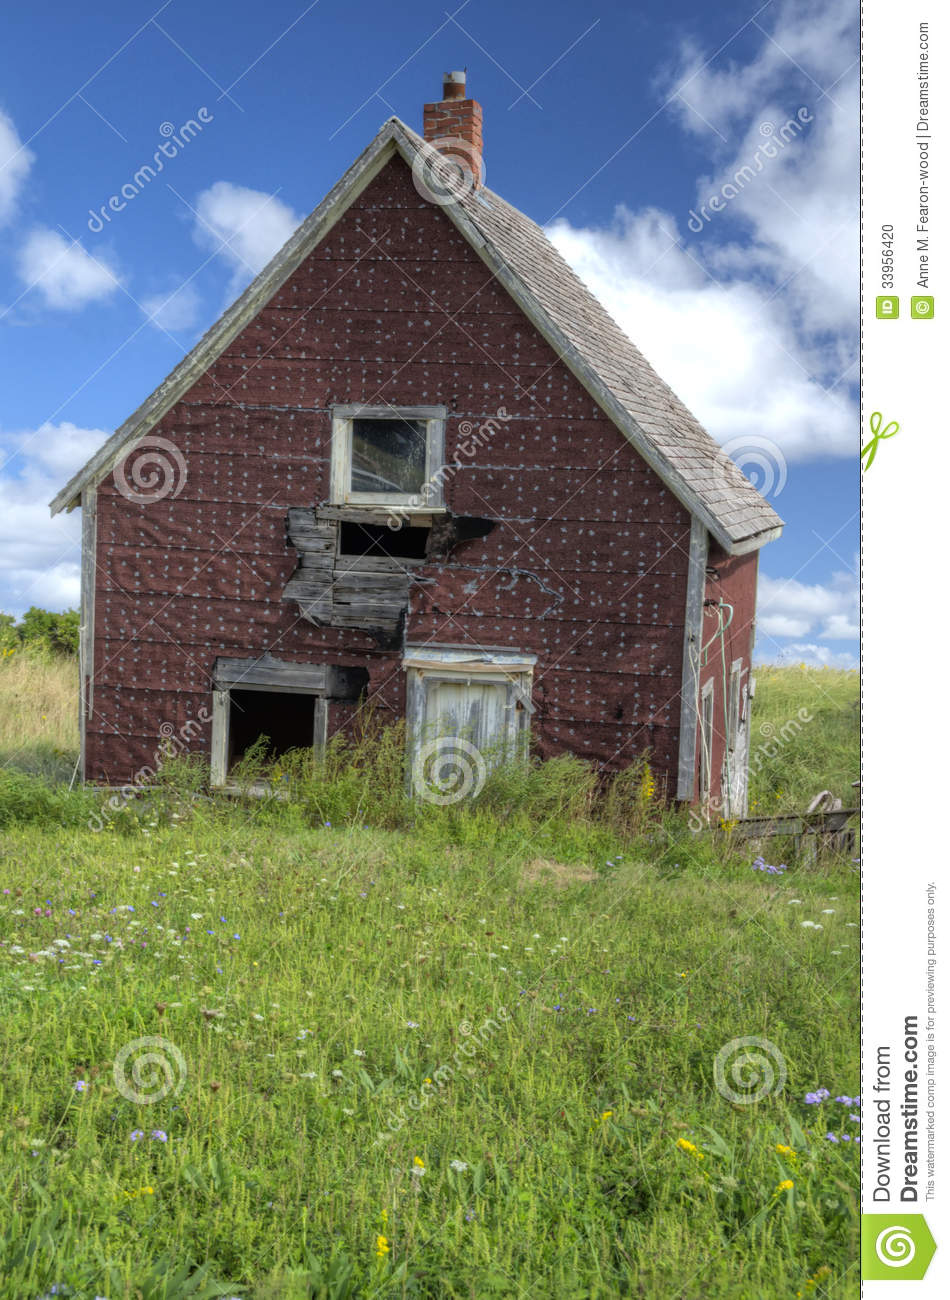 Old house stock photo image 33956420 for Classic house akasaka prince